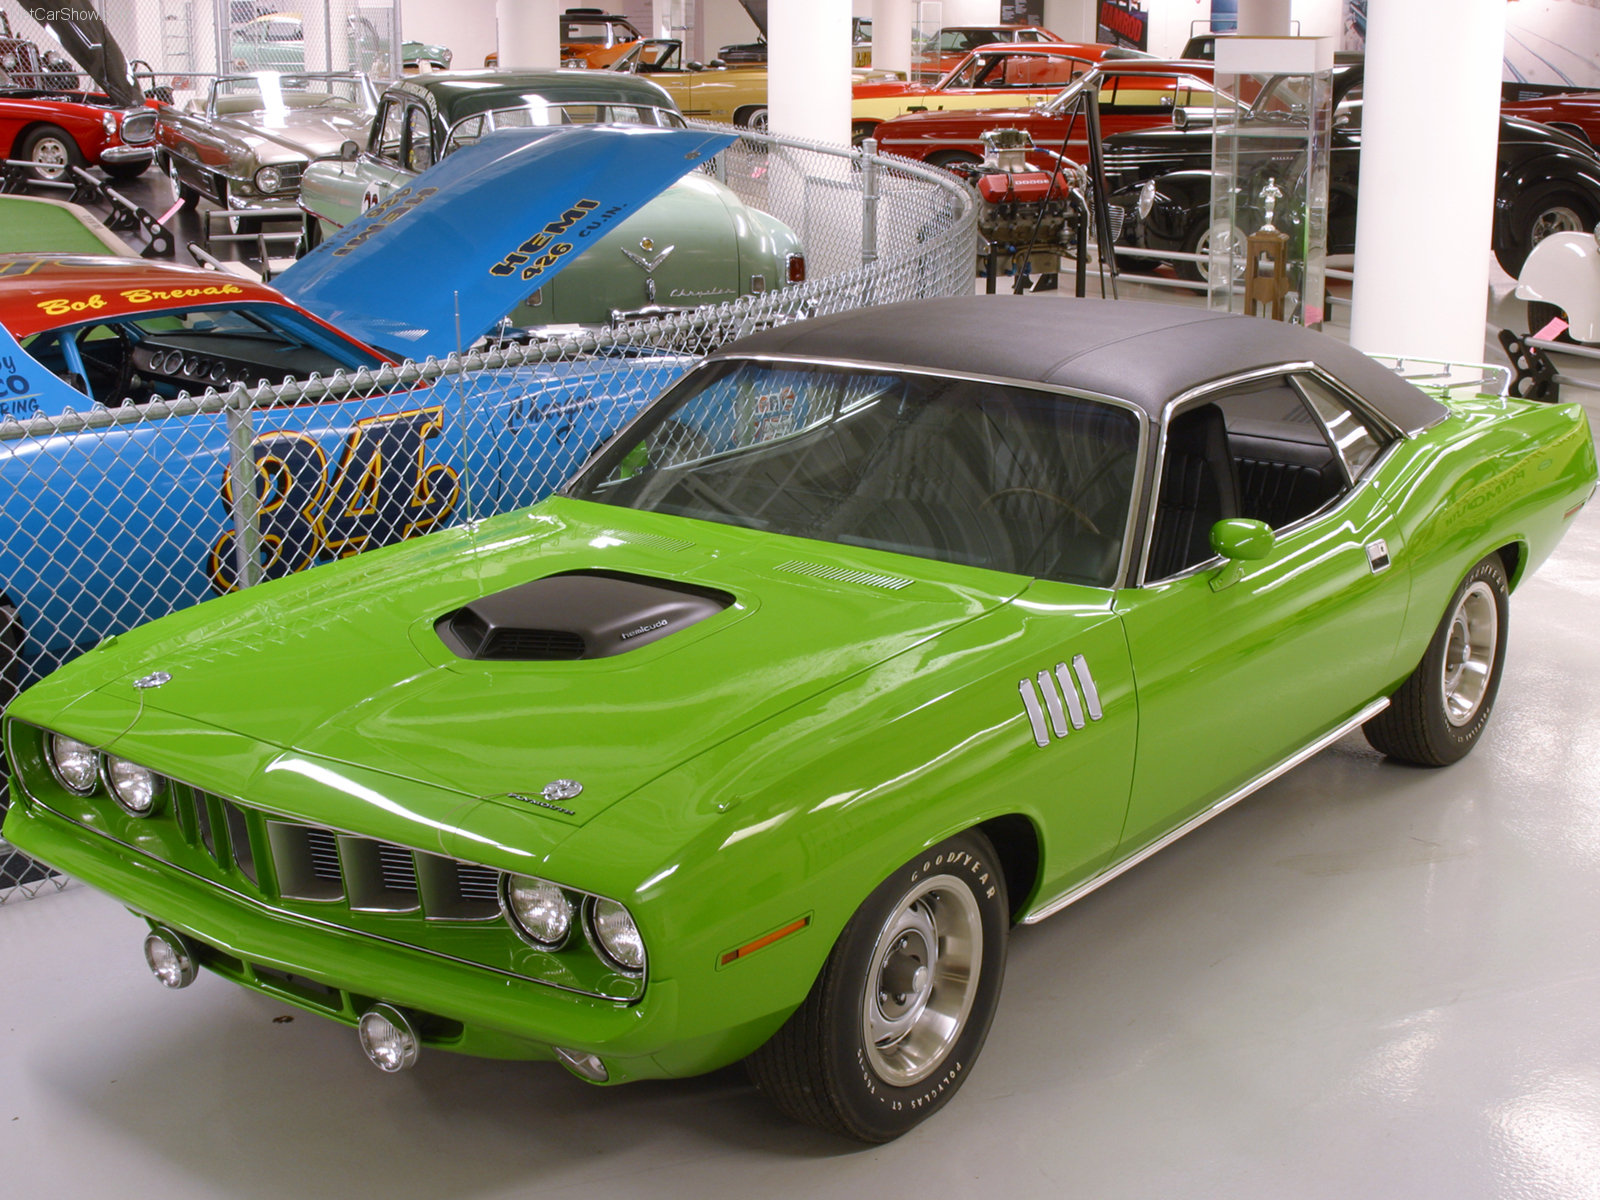 1973 PLYMOUTH CUDA CUSTOM COUPE 187055 likewise Plymouth Cuda in addition 291497315016 as well 6001707704 besides Photo 07. on cuda 440 engine